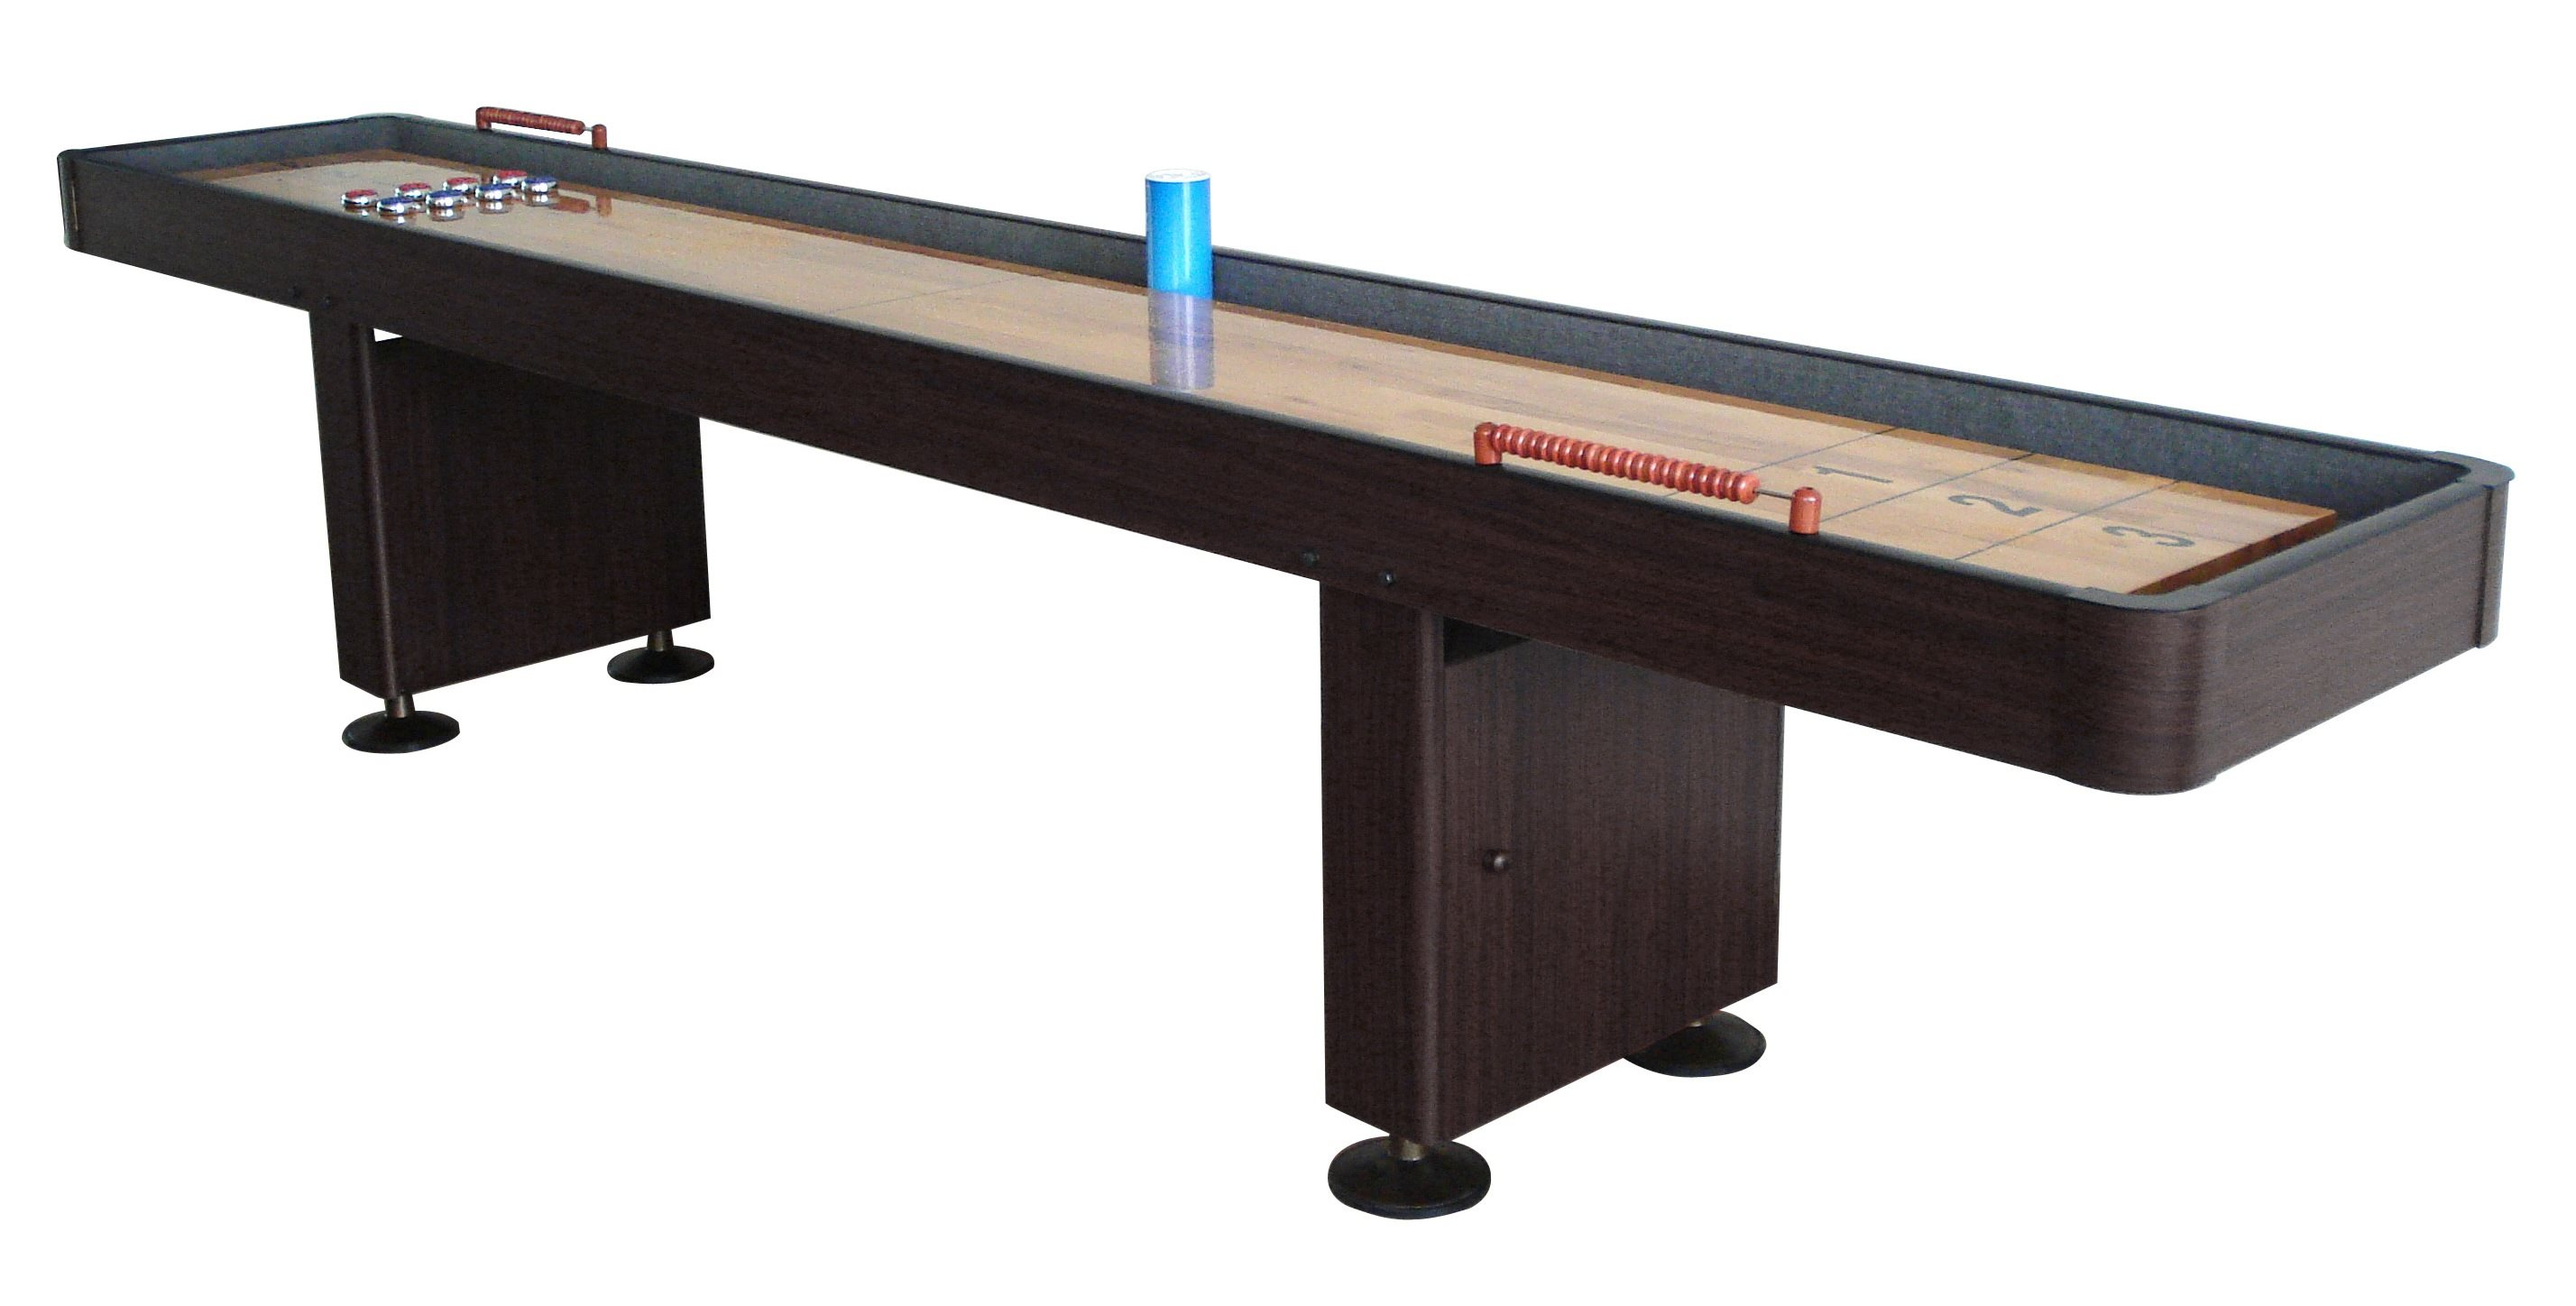 Carmelli Challenger 12 Shuffleboard Table - Walnut Finish